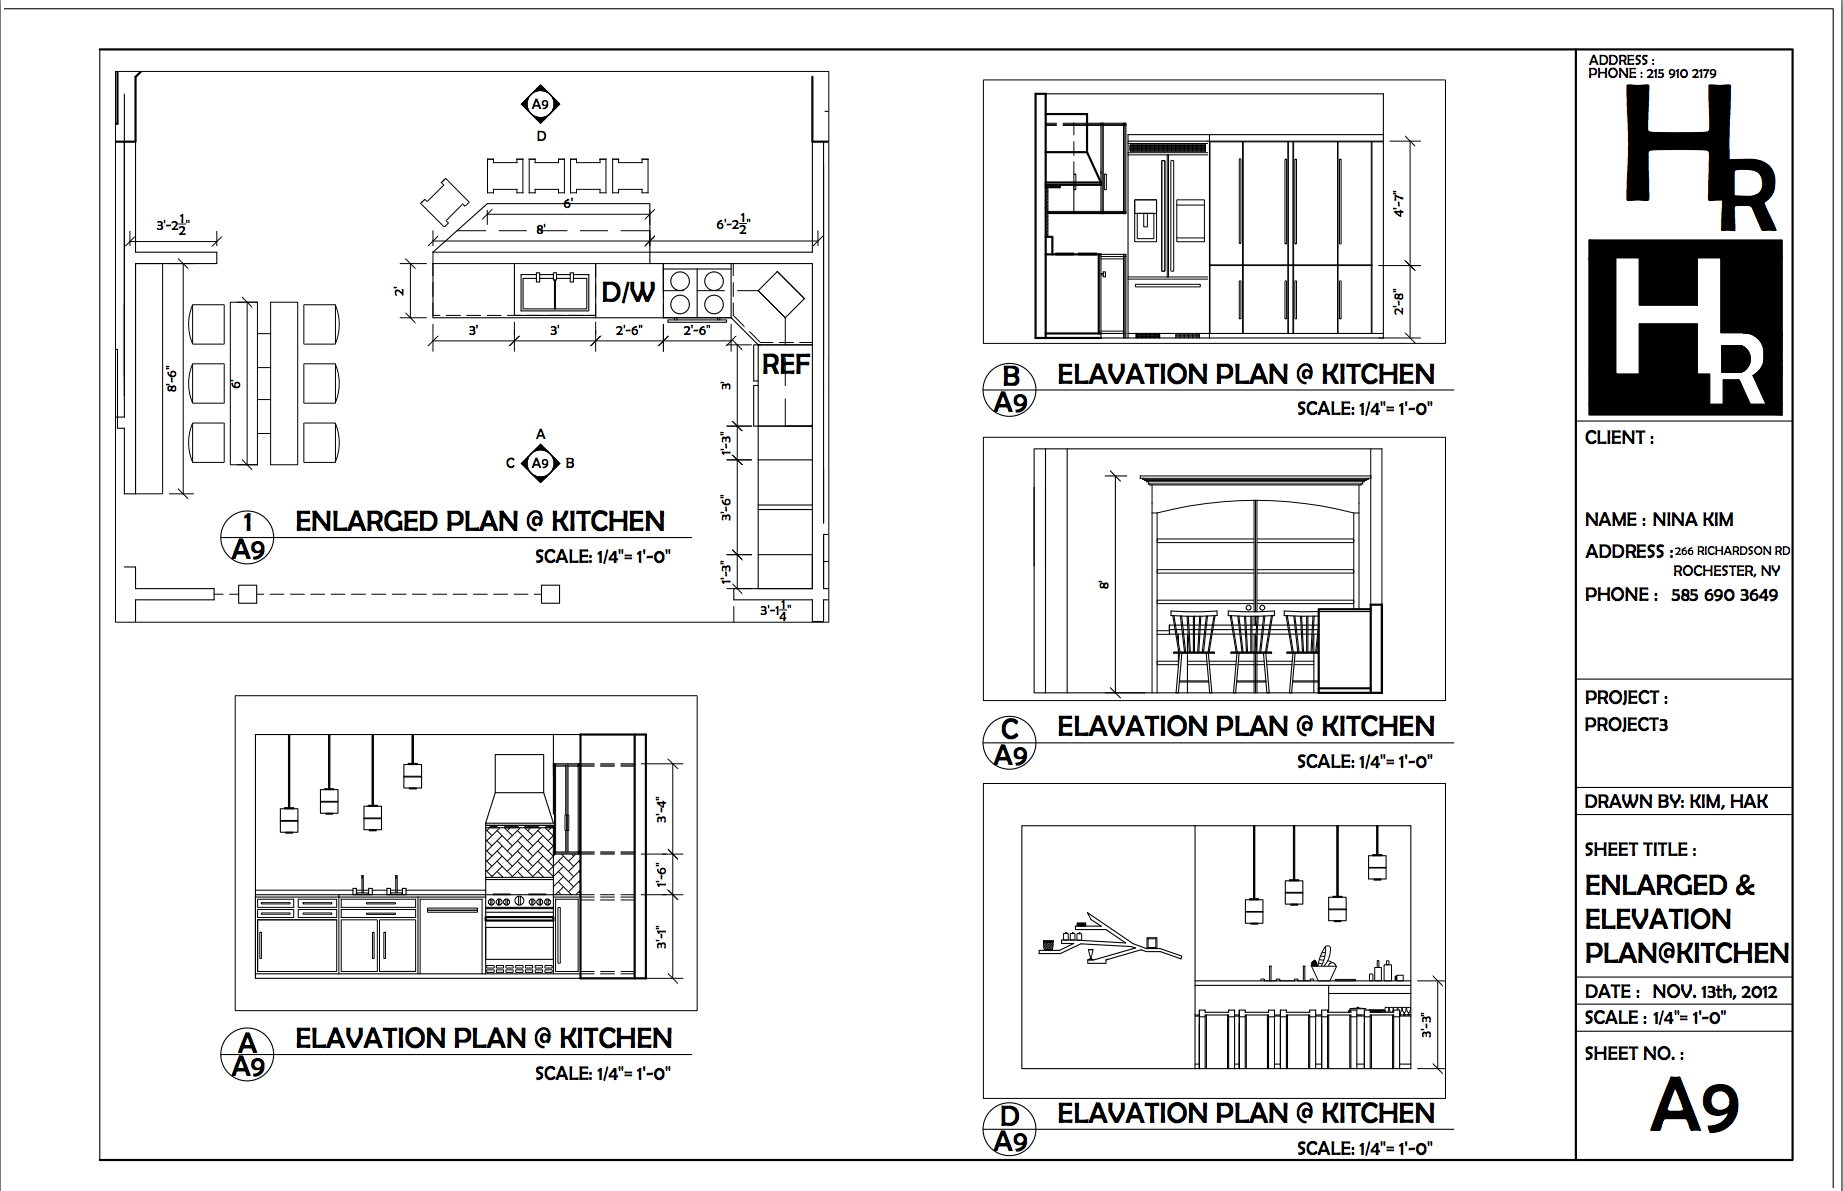 small resolution of kitchen enlarged and elevation plan elevation plan autocad floor plans house floor plans